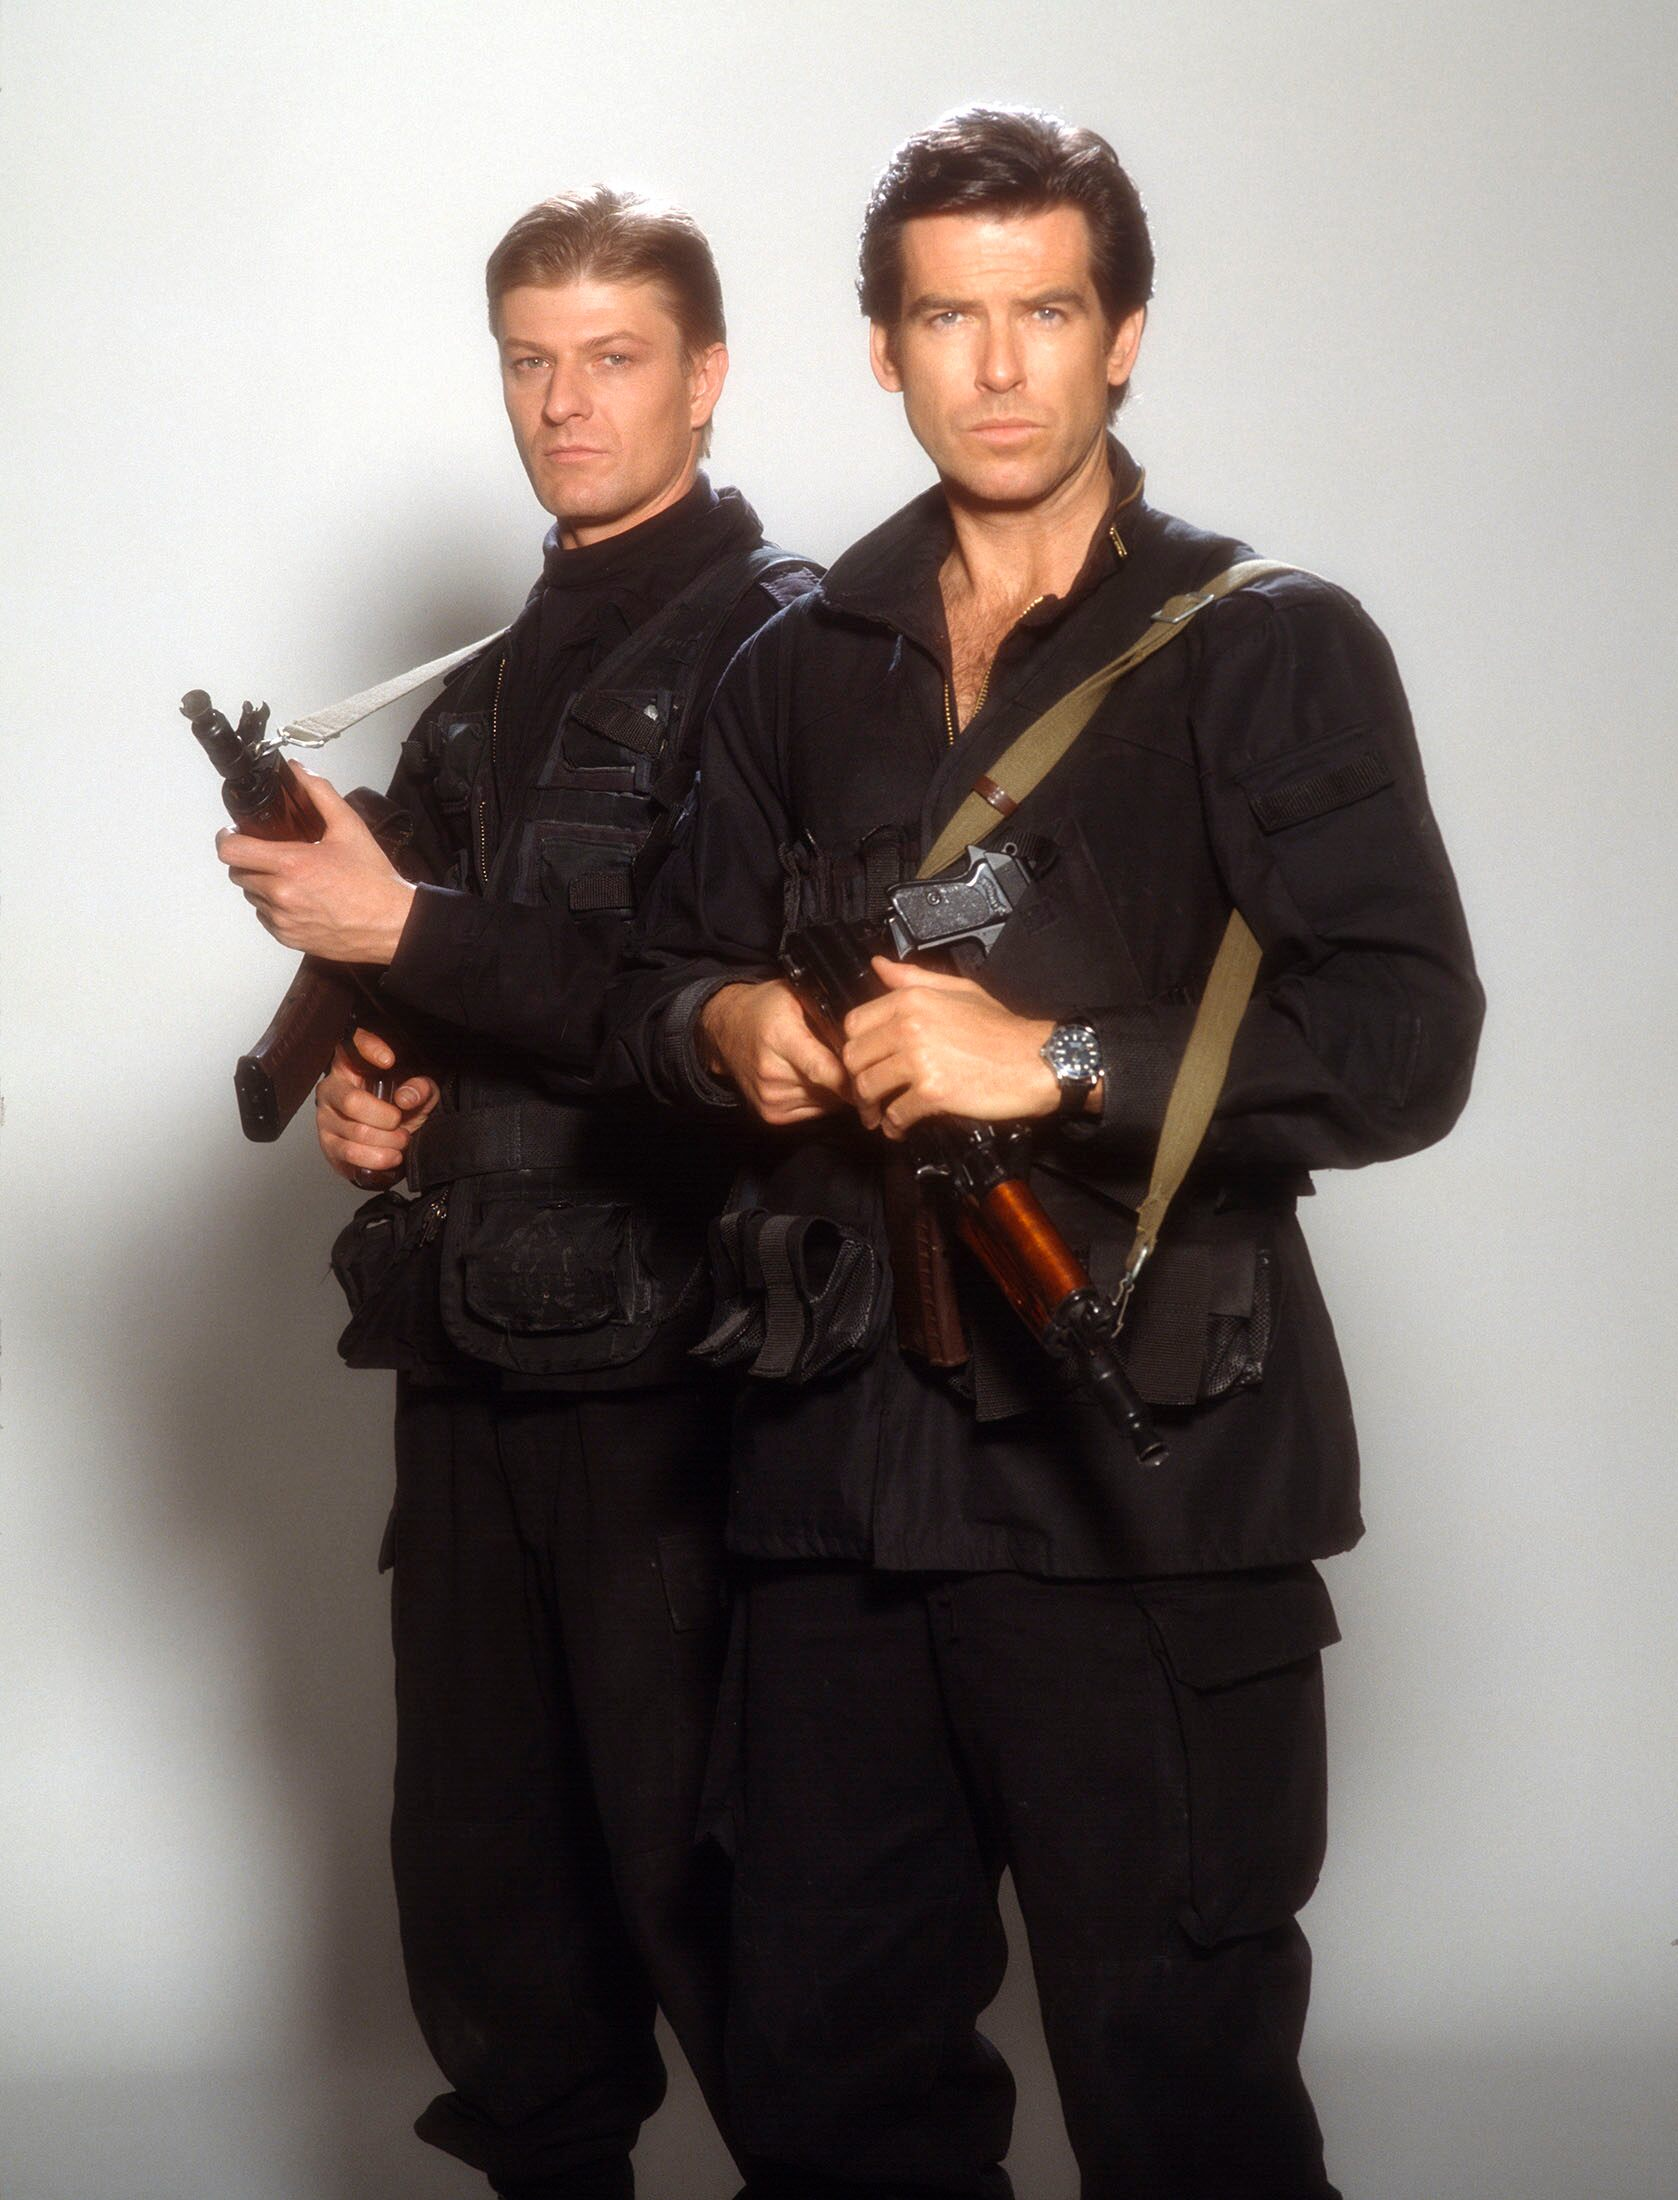 Pierce Brosnan and Sean Bean